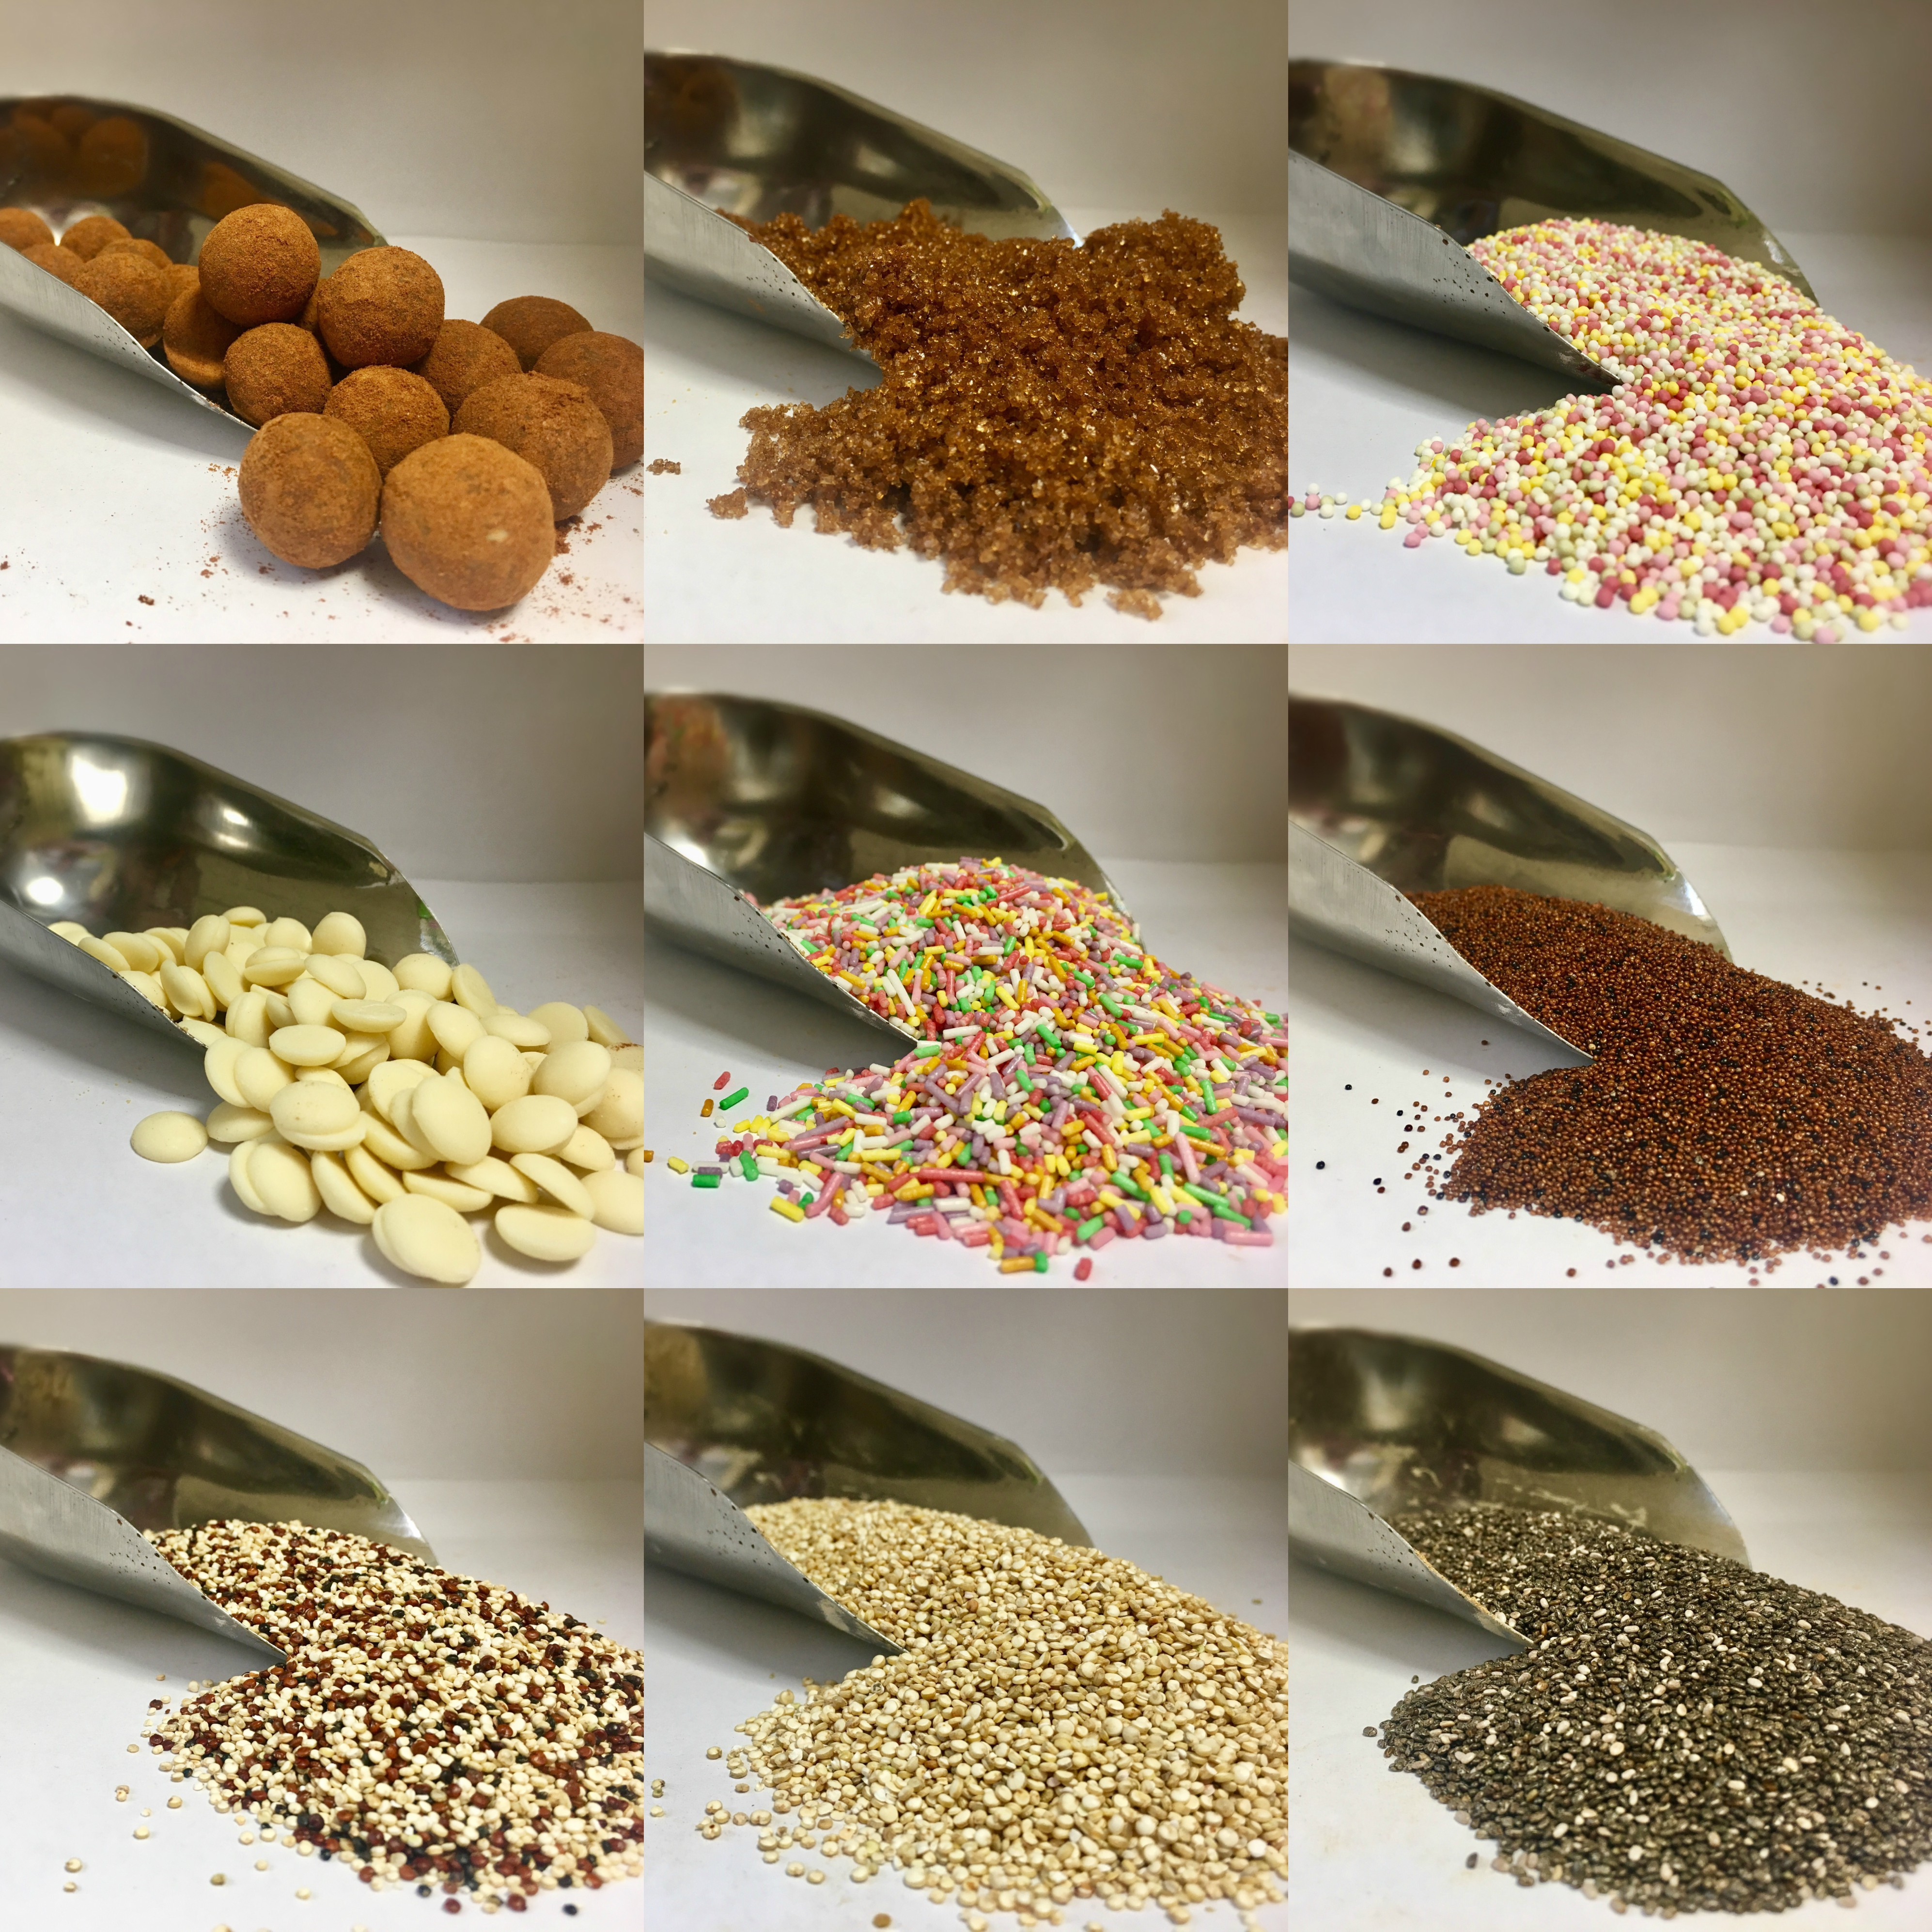 ECOLOGICAL SUPERFOODS